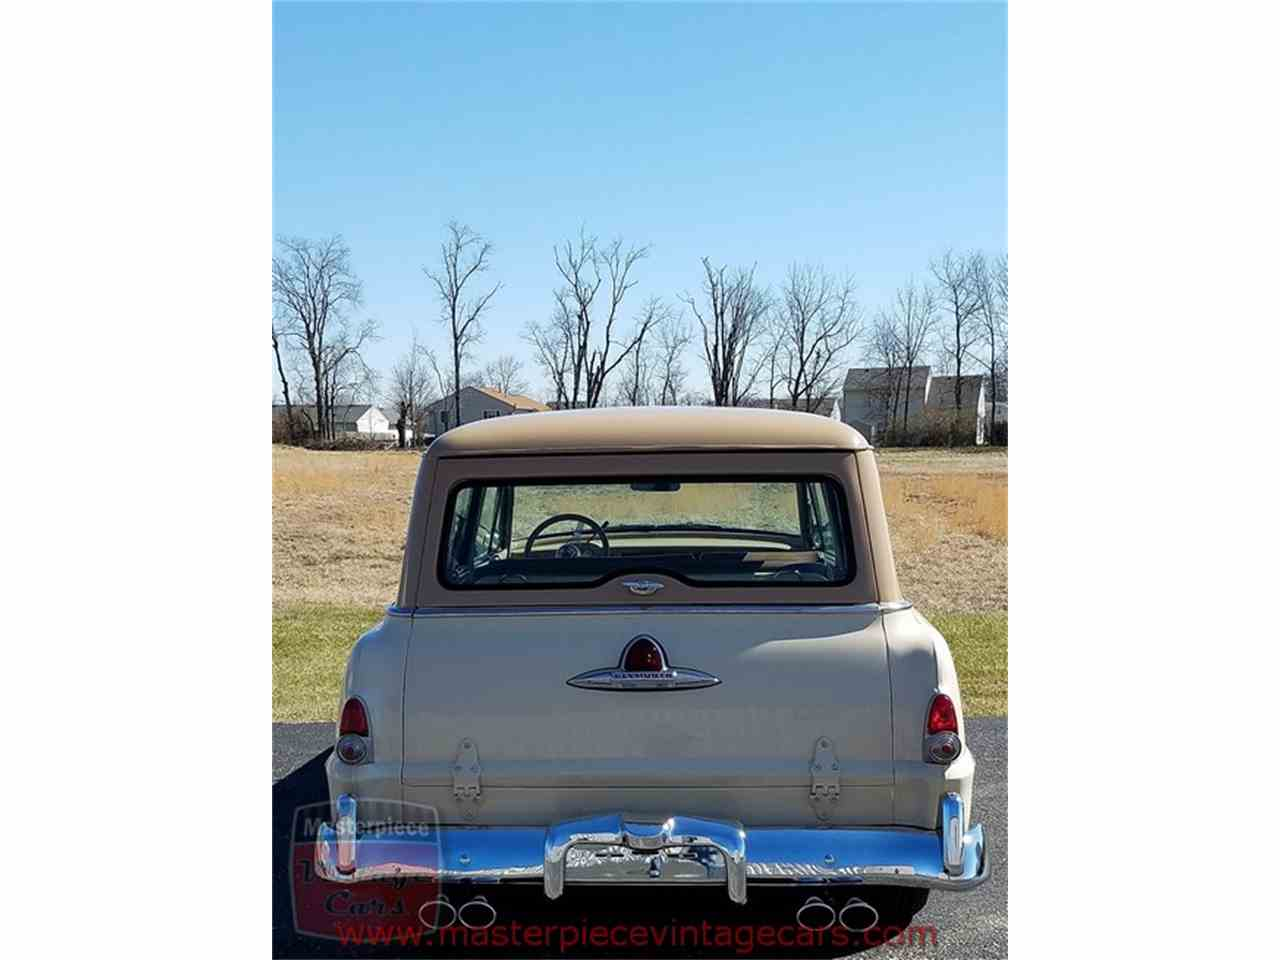 Large Picture of Classic 1954 Plymouth Plaza Suburban located in Whiteland Indiana - $34,900.00 Offered by Masterpiece Vintage Cars - KV49